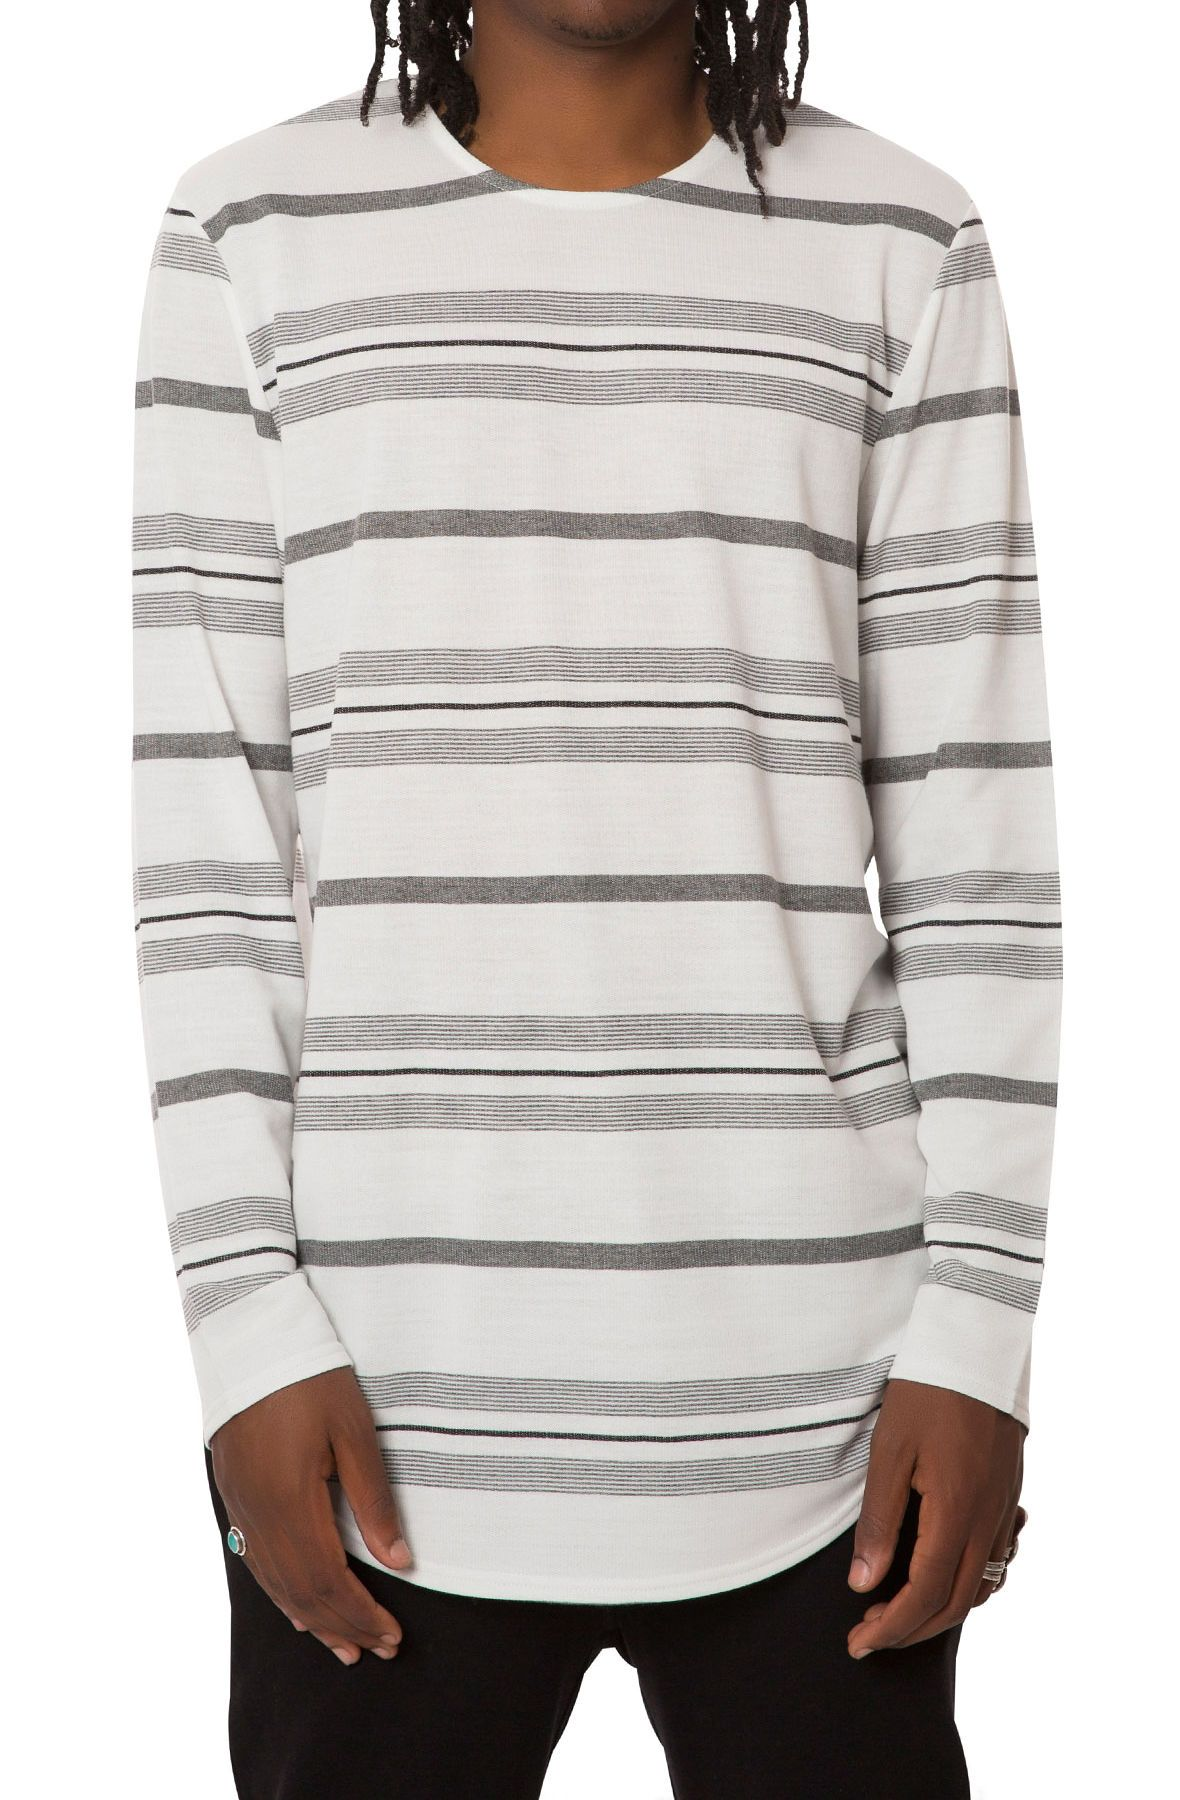 ddf3632469e7 Elwood The Ls French Terry Curved Hem Tee In White Stripes White ...